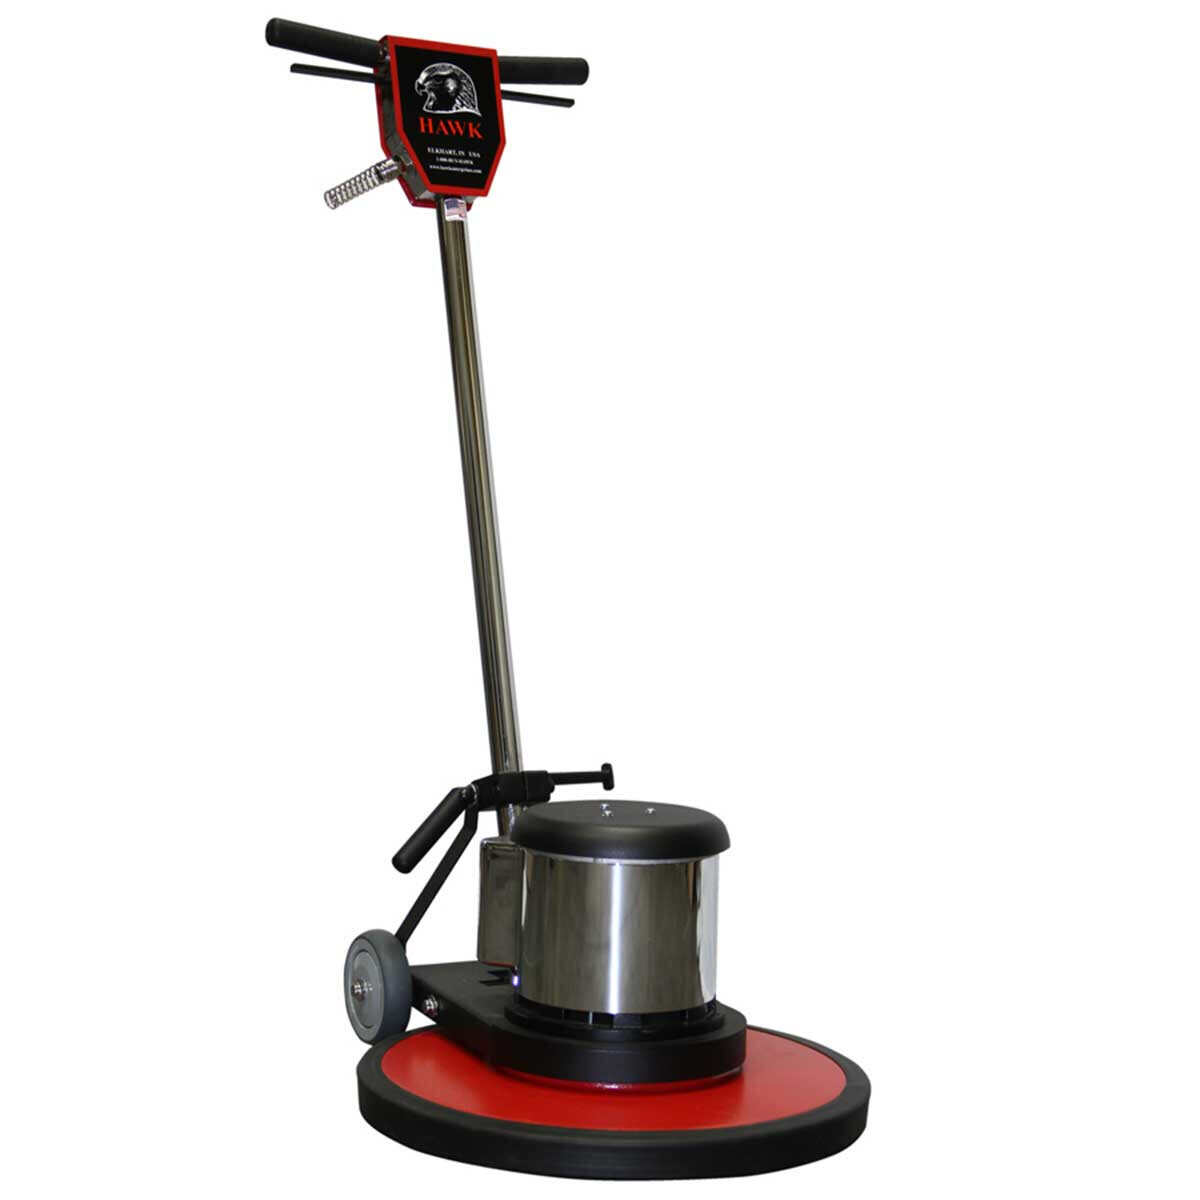 hawk 20 inch XHD heavy duty floor machine F30-01